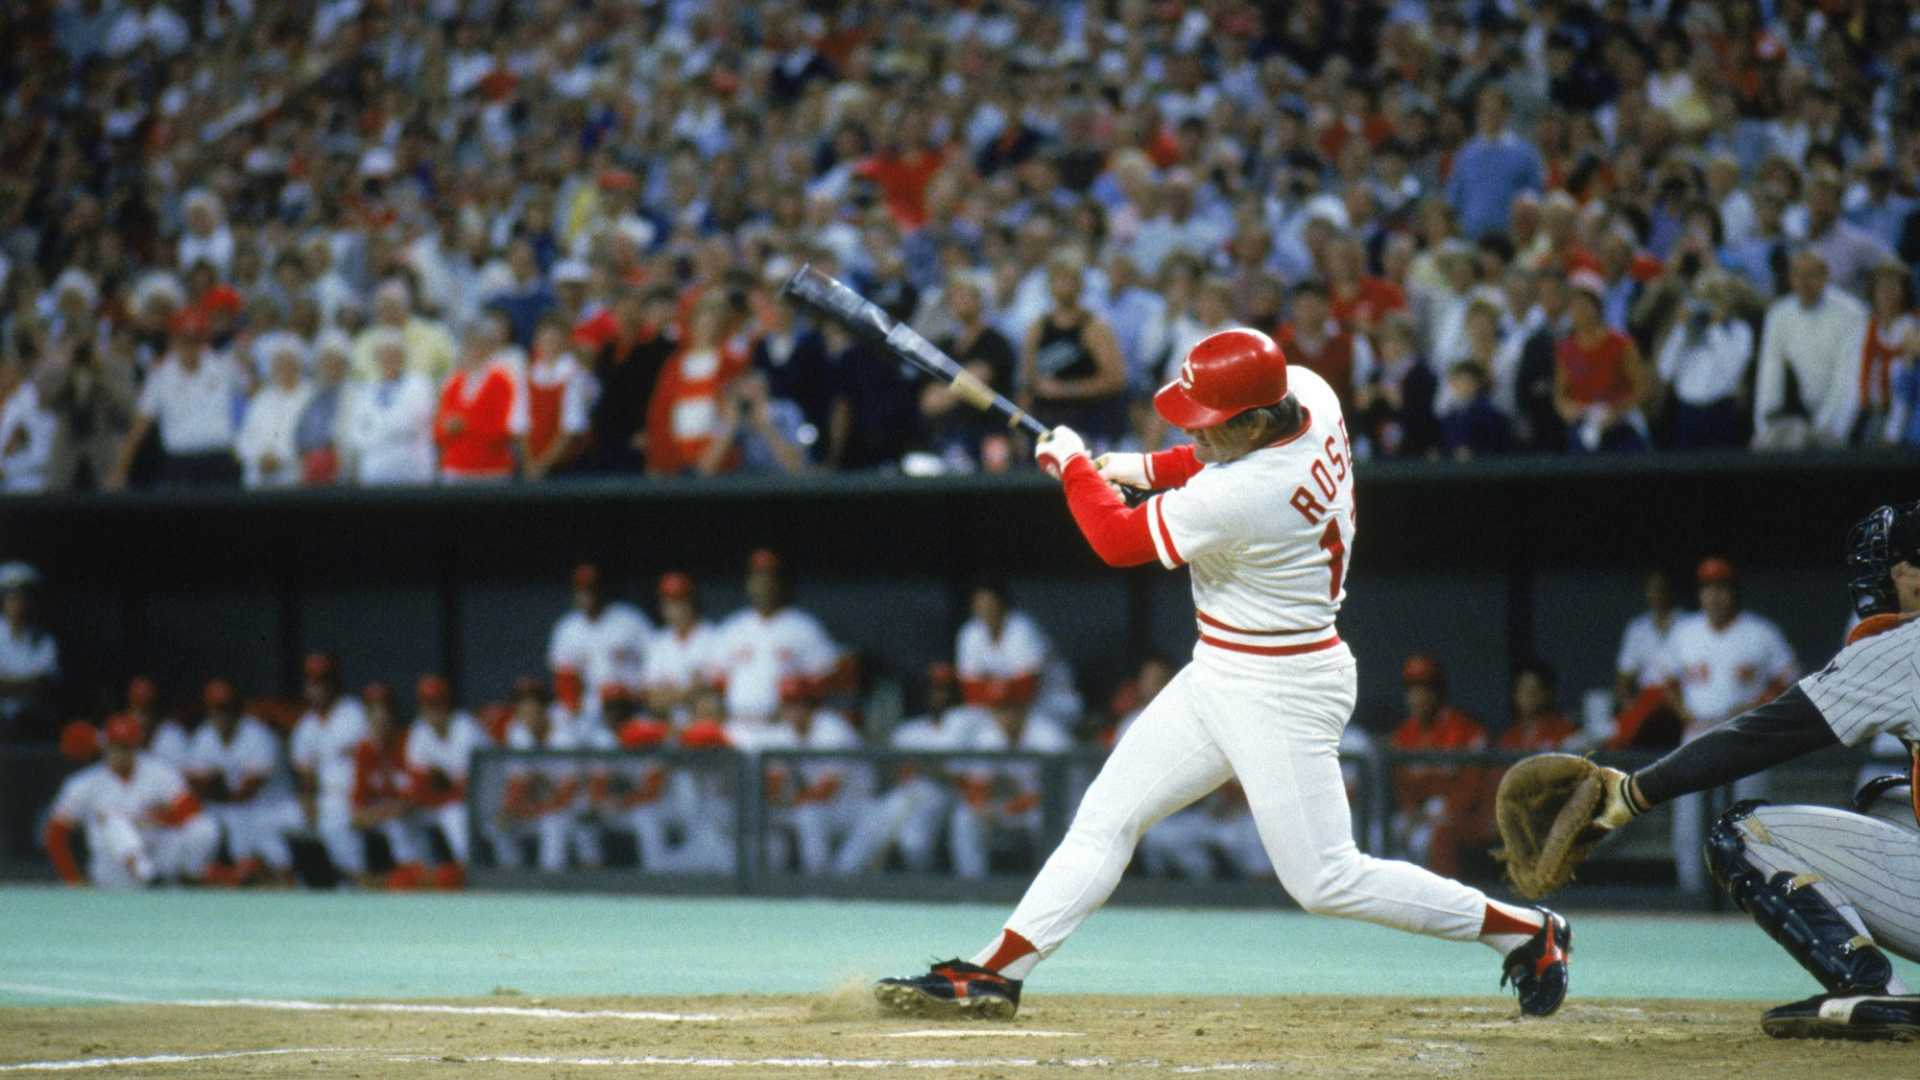 I Just Sat On a Plane Next to Baseball's Greatest Hitter, Pete Rose--And Got 5 Powerful Leadership Lessons